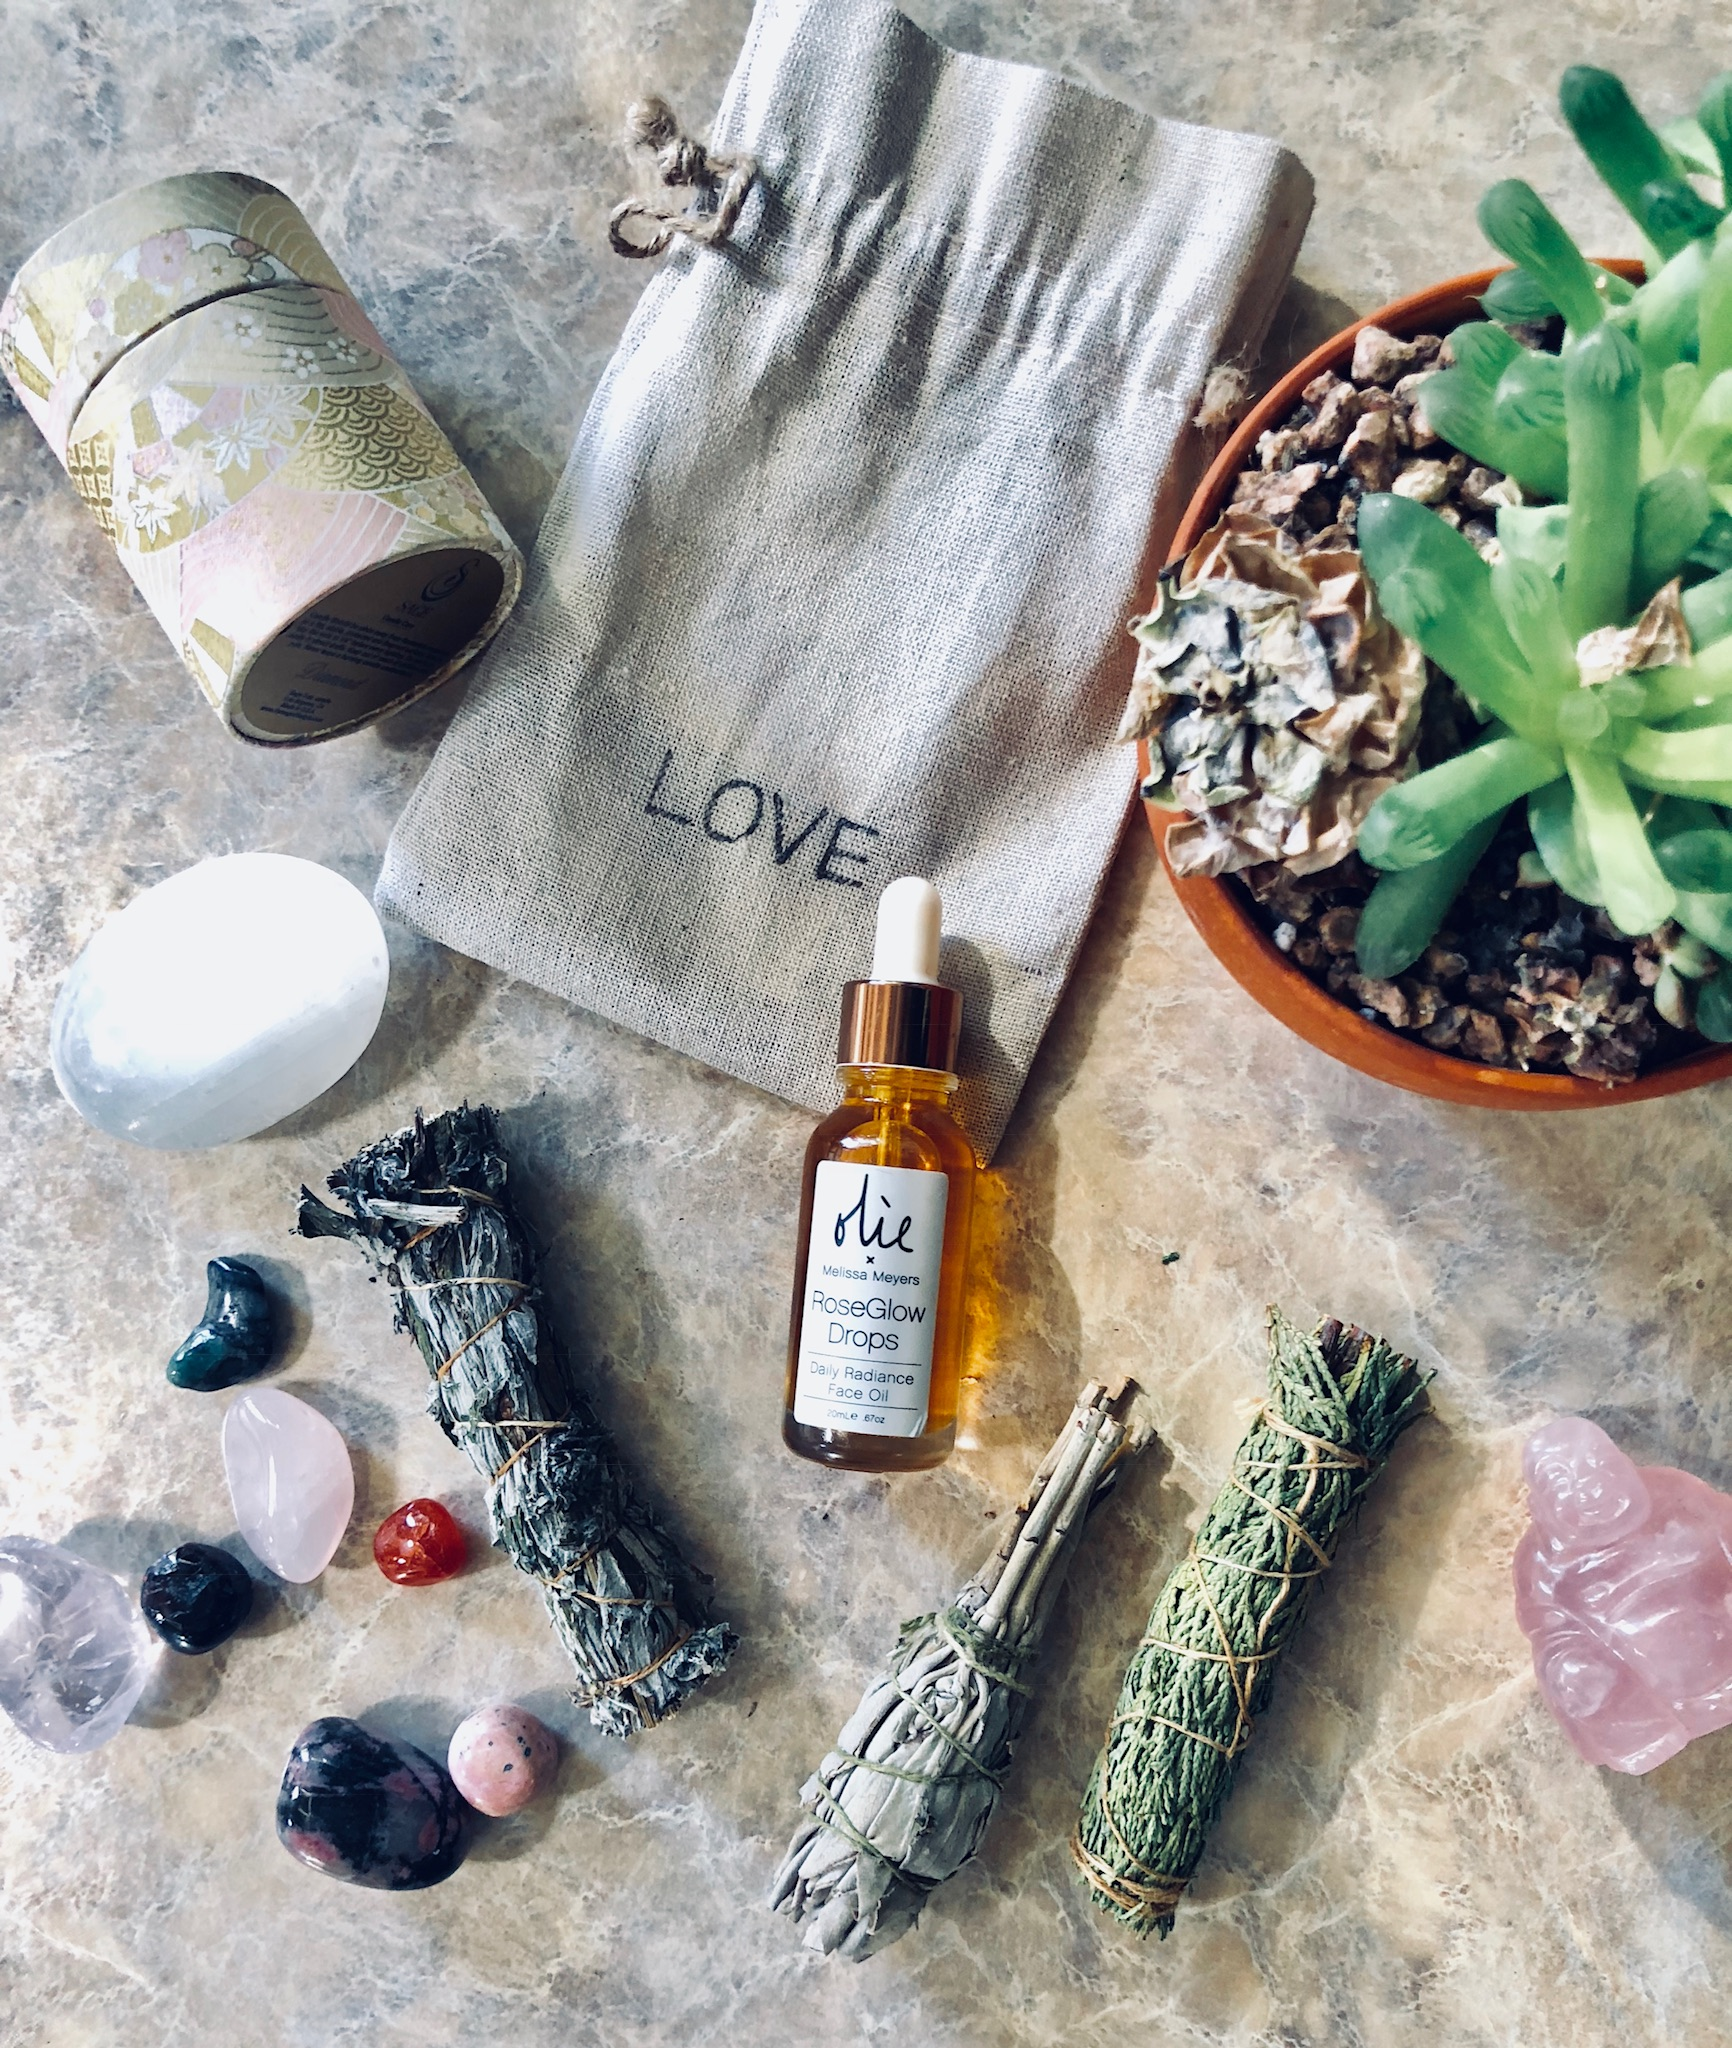 The  Sage Lifestyle Onyx Candle  (my fave scent),  Flight of the Heart Love Pouch Crystals,  Olie X Melissa Meyers  RoseGlow drops.